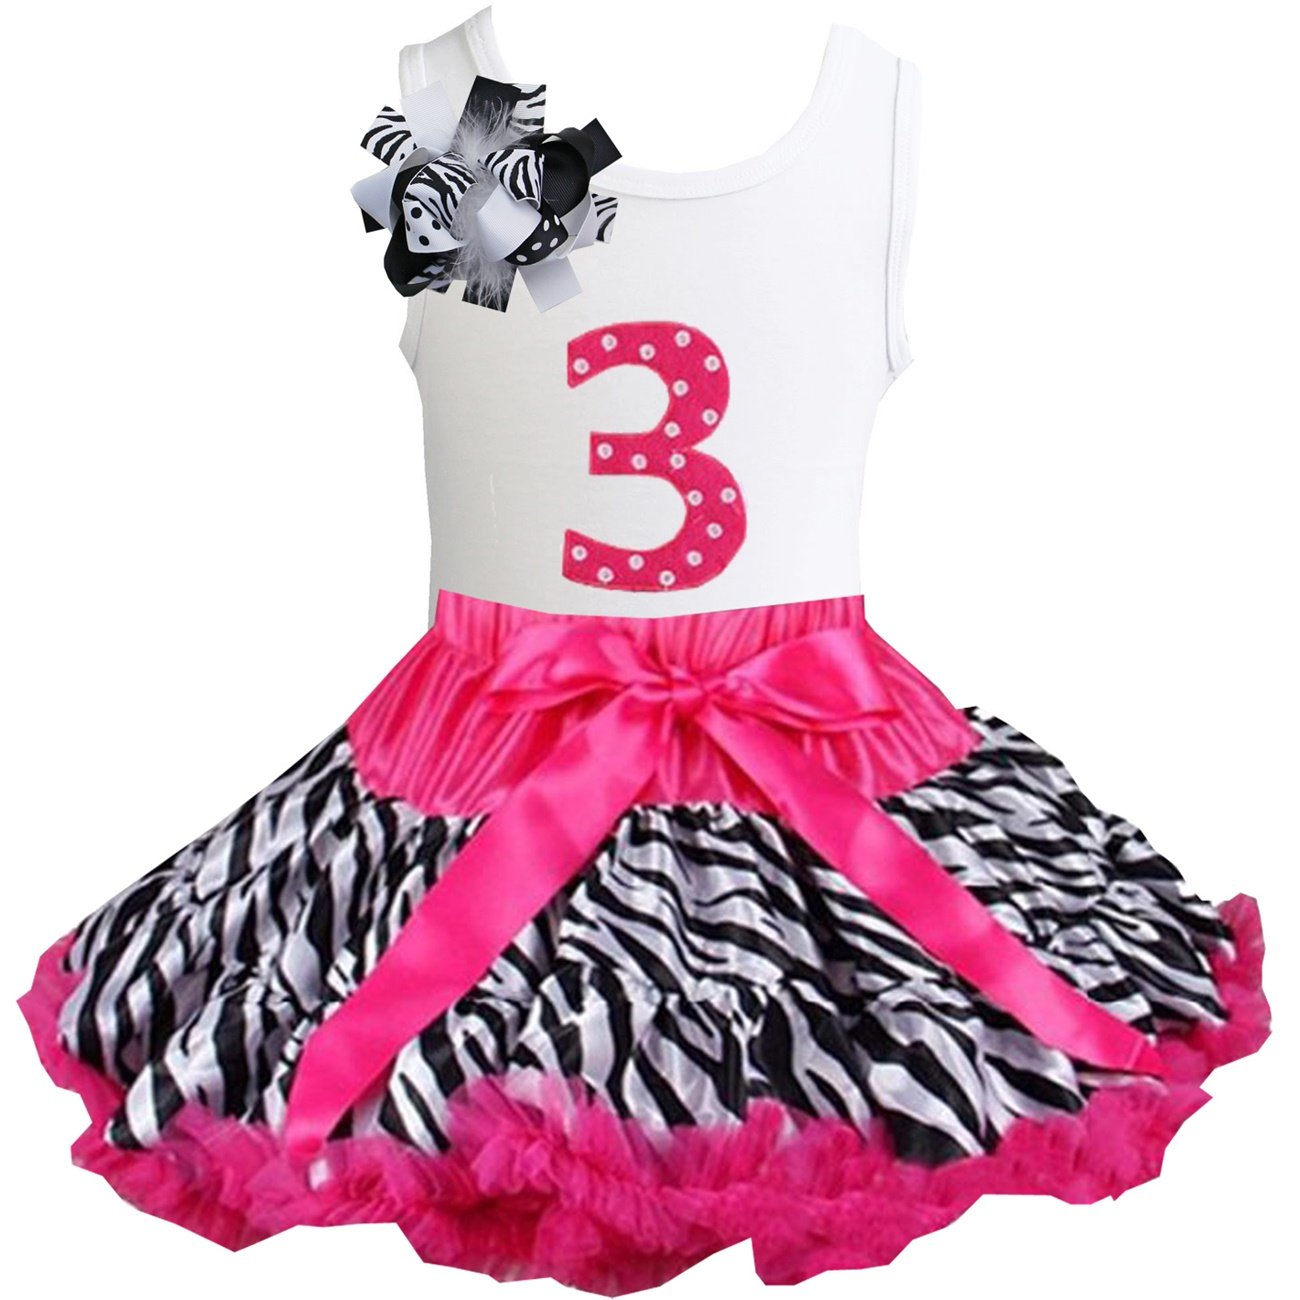 6th Birthday Tee 2pcs Dress Outfit Kirei Sui Girls Ruffled Tutu /& 1st